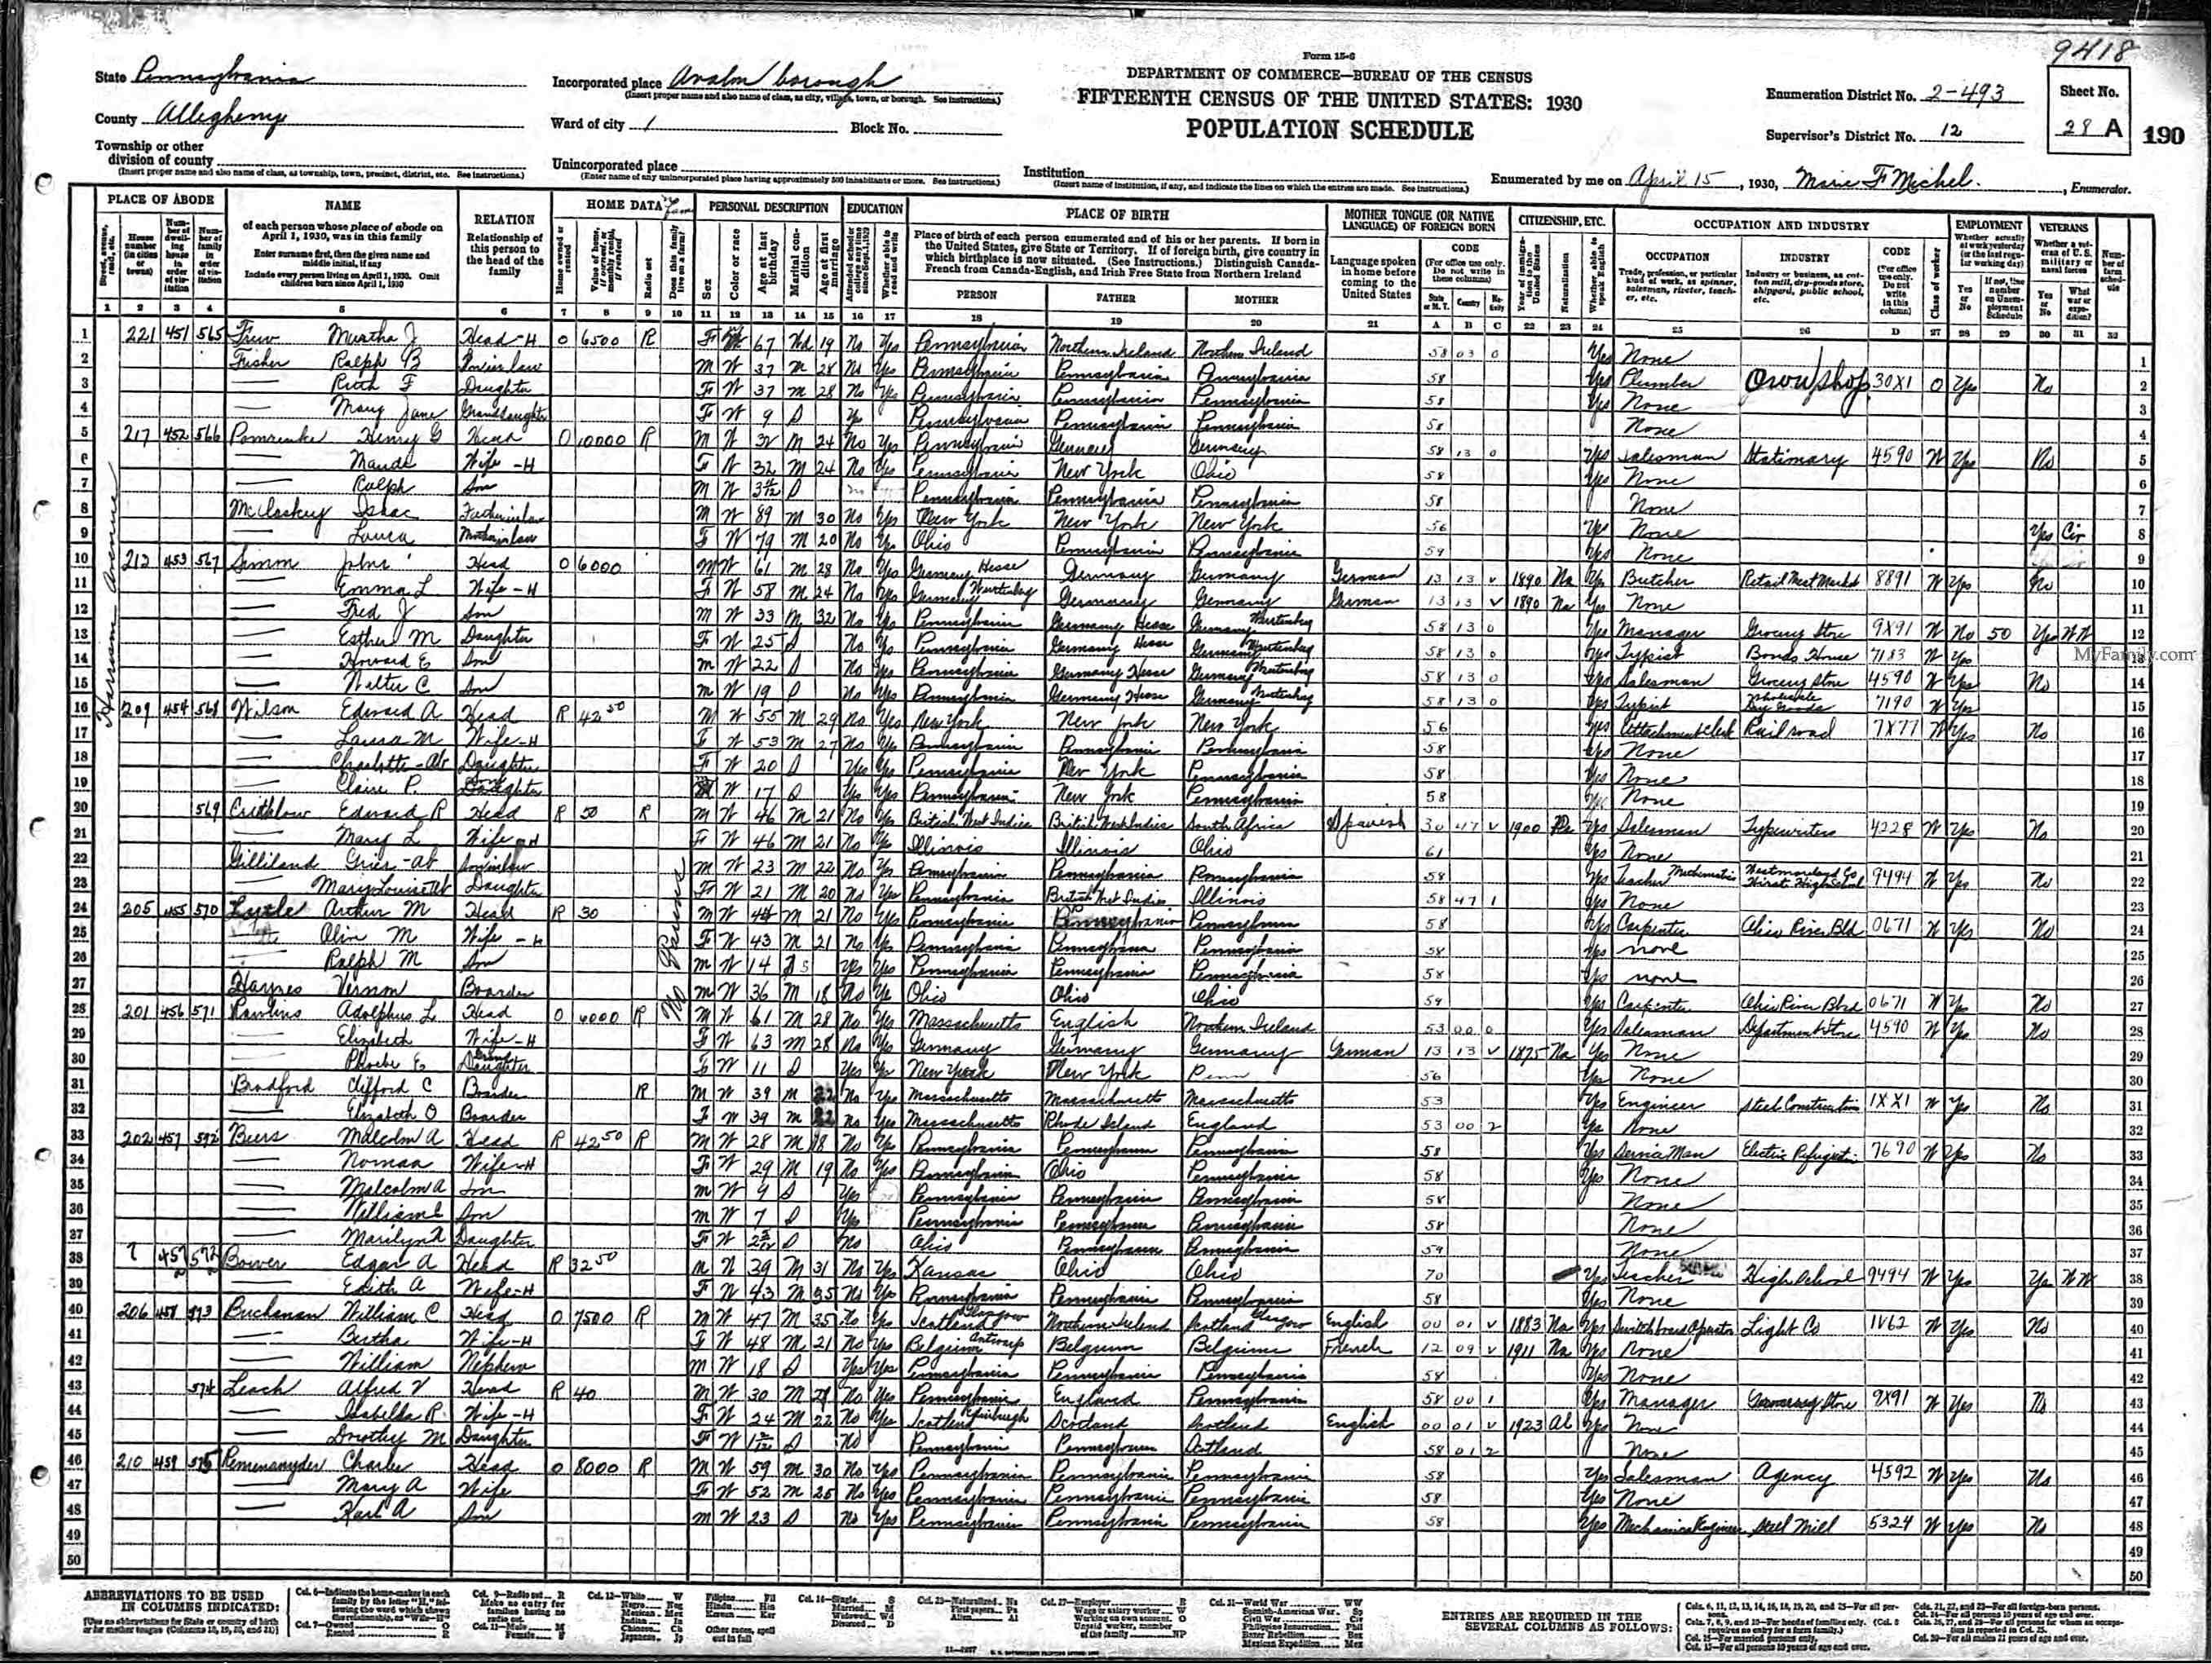 Isaac McClaskey, Laura and Maude McClaskey, 1930 US Census